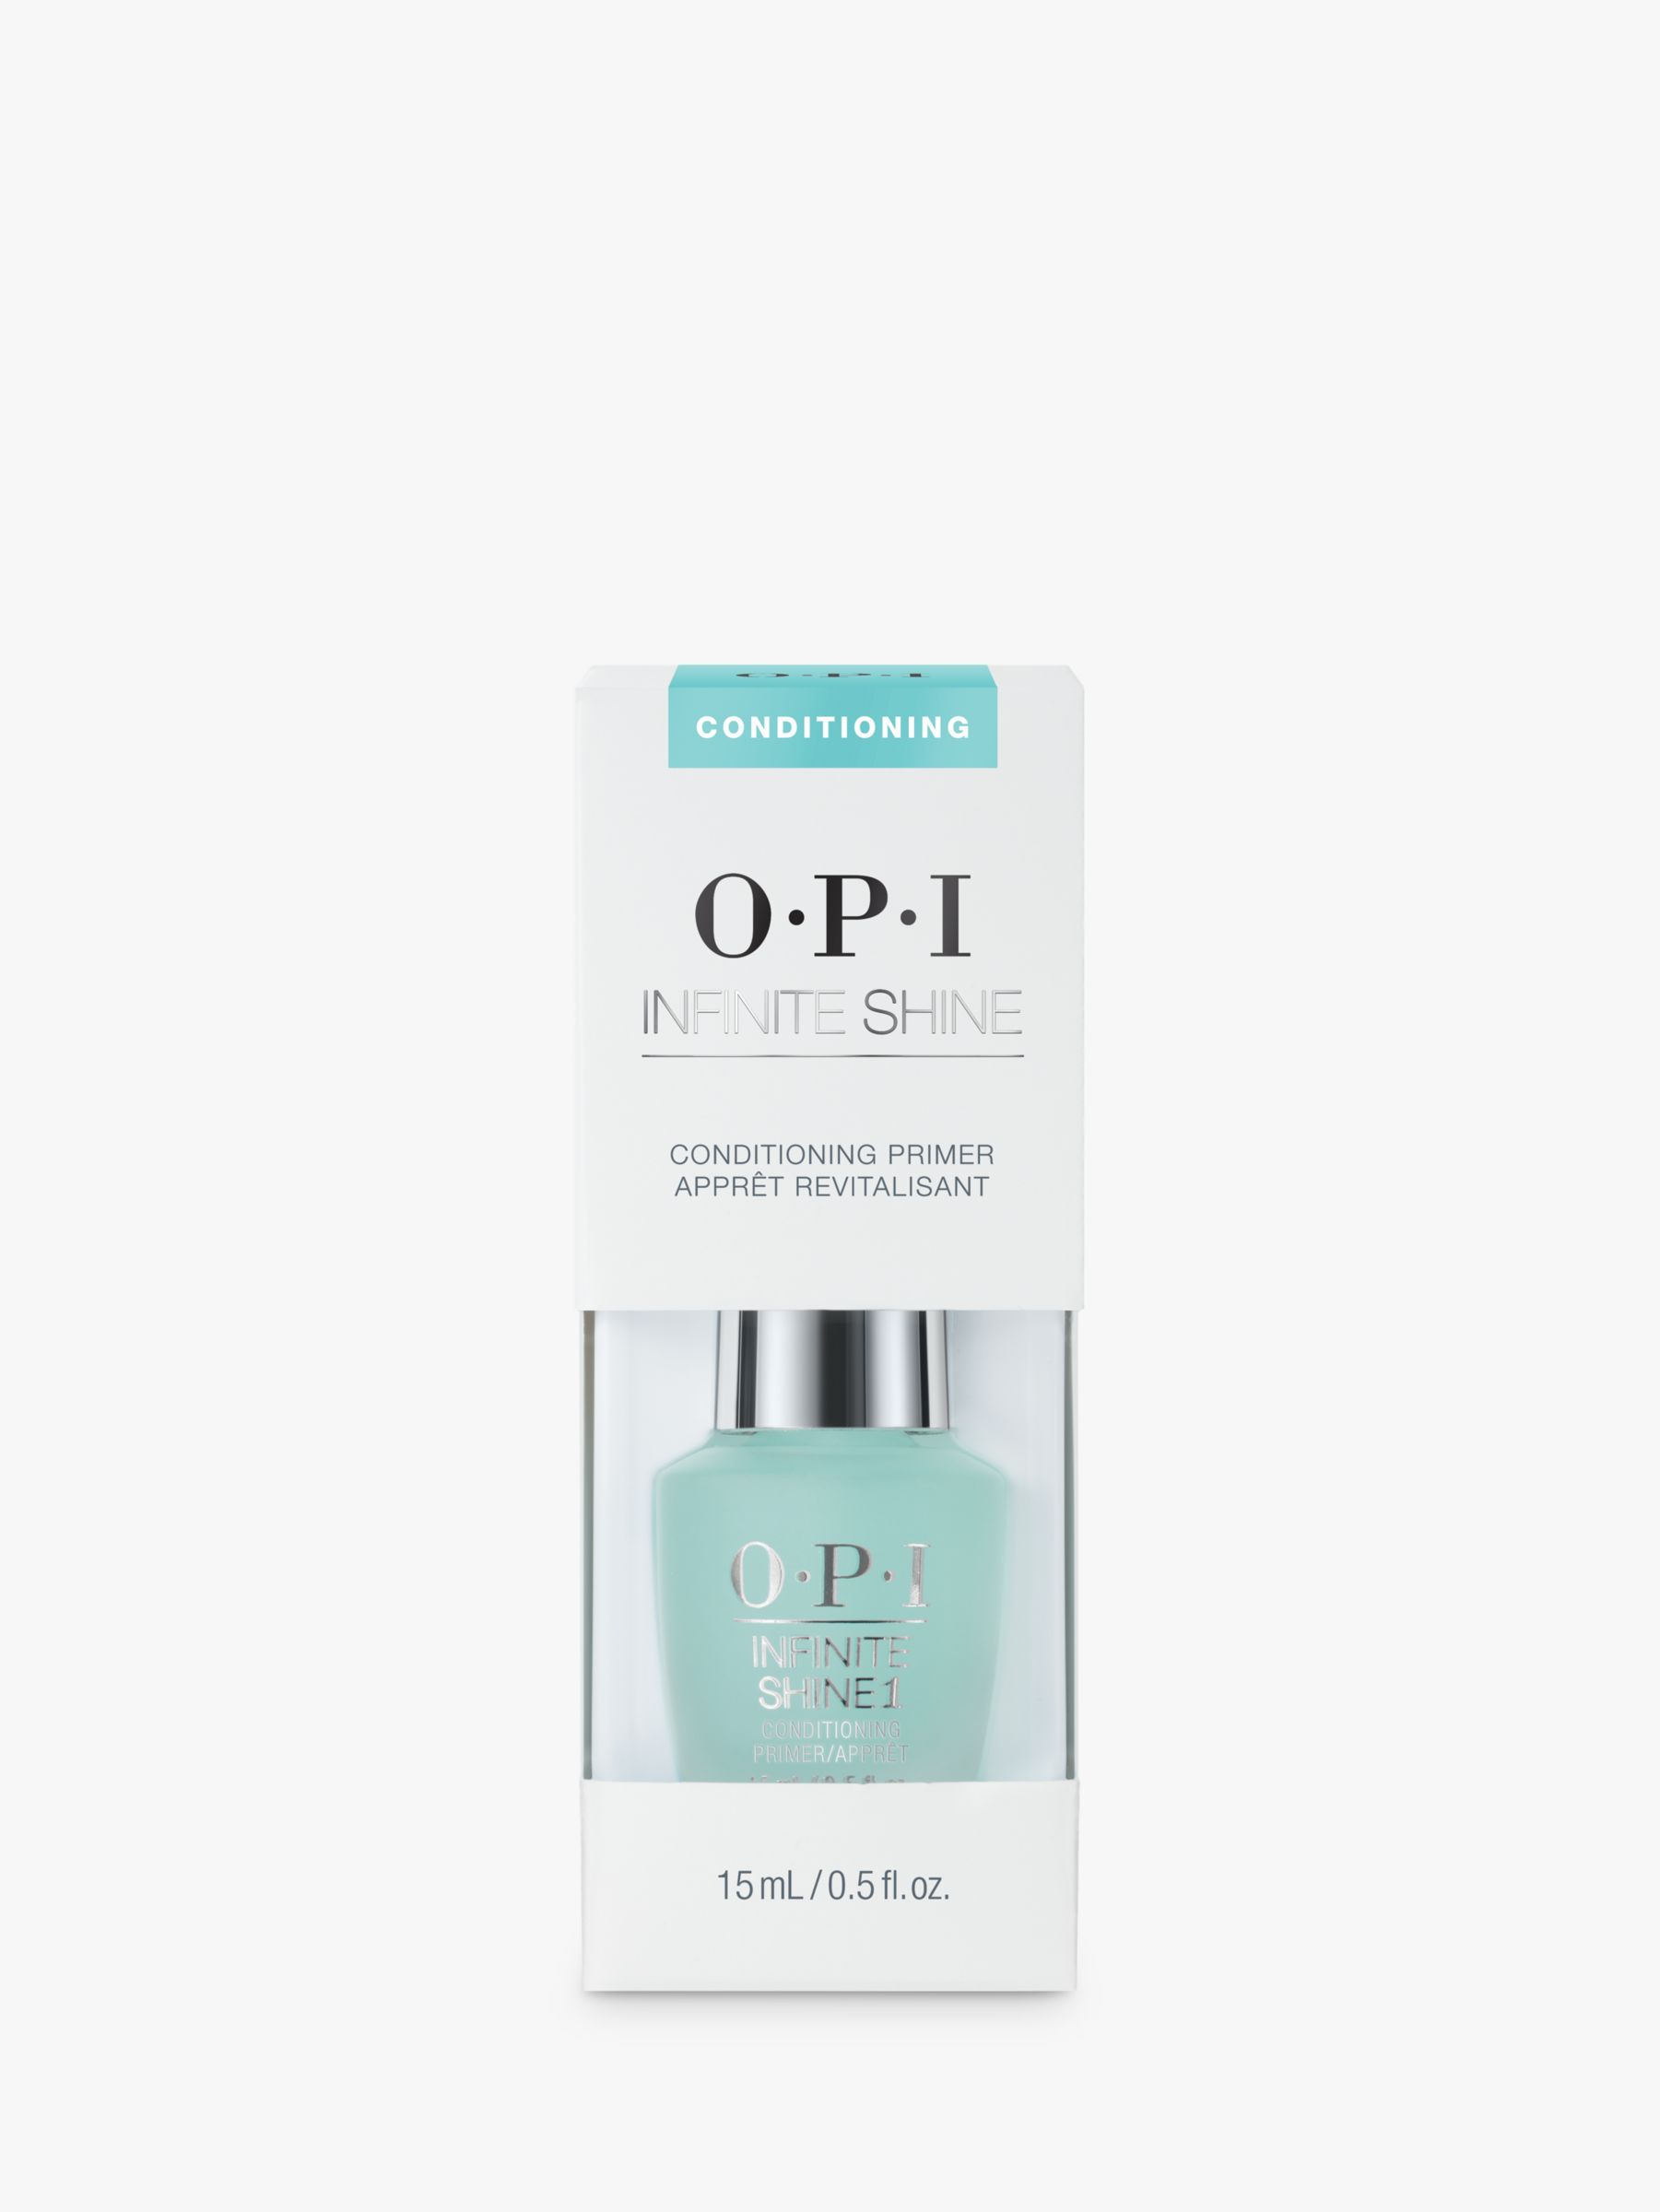 OPI OPI Infinite Shine Treatments Conditioning Primer, 15ml